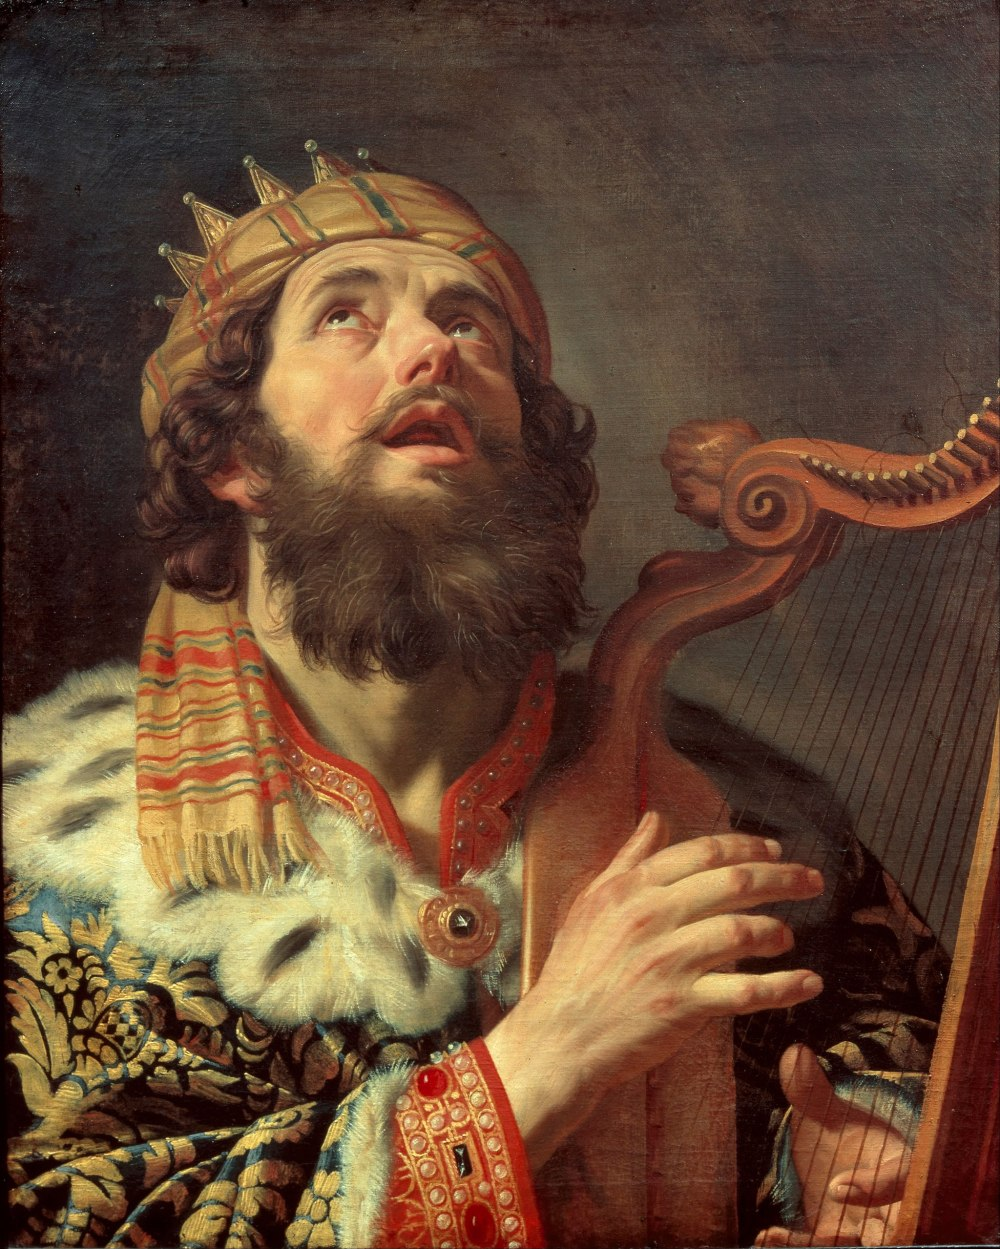 2048px-Gerard_van_Honthorst_-_King_David_Playing_the_Harp_-_Google_Art_Project.jpg